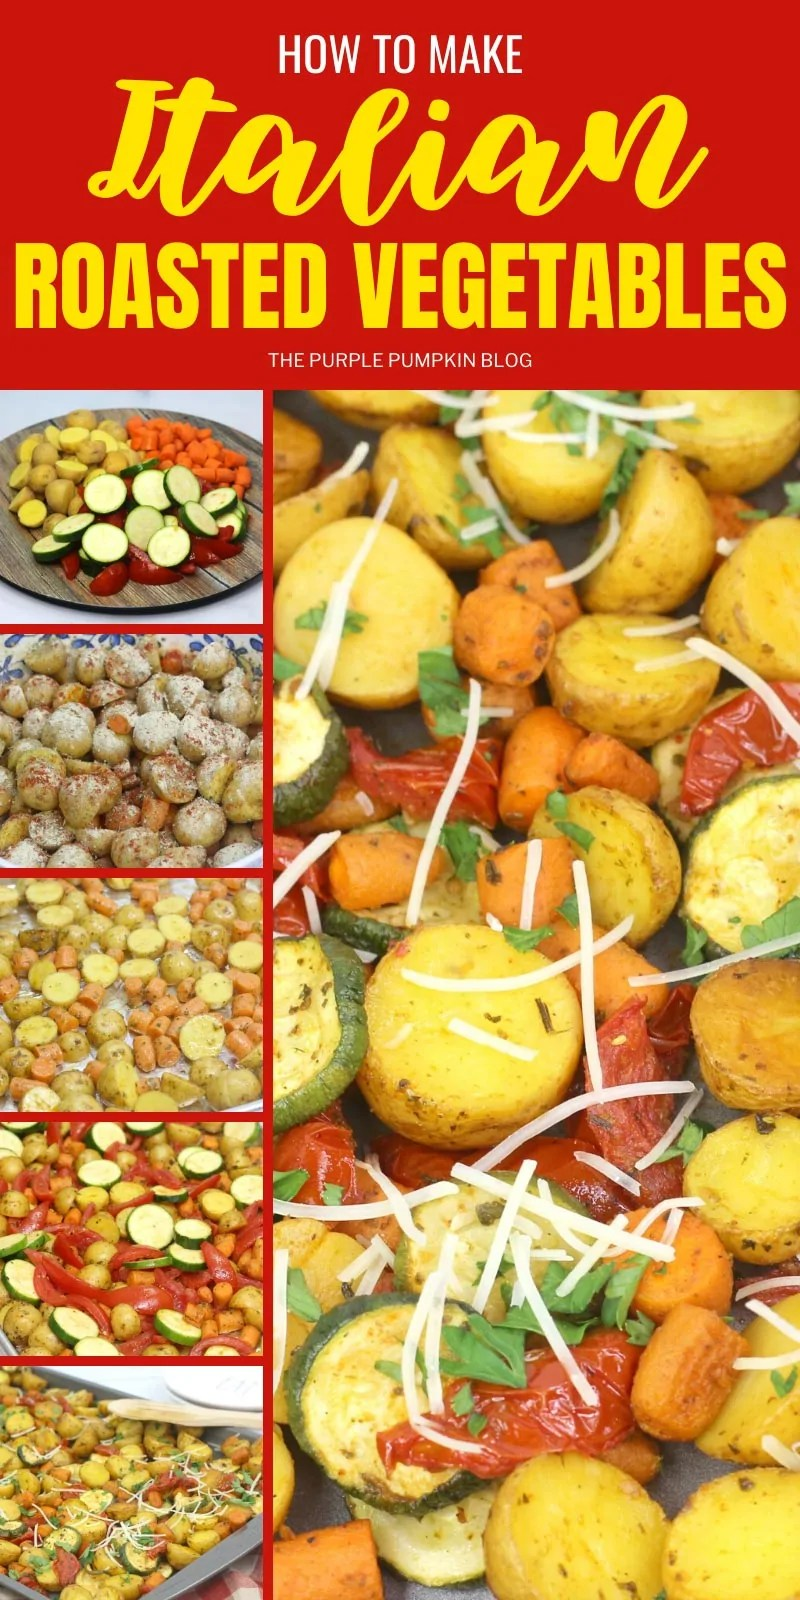 How to make Italian Roasted Vegetables - images of the various steps to make the dish